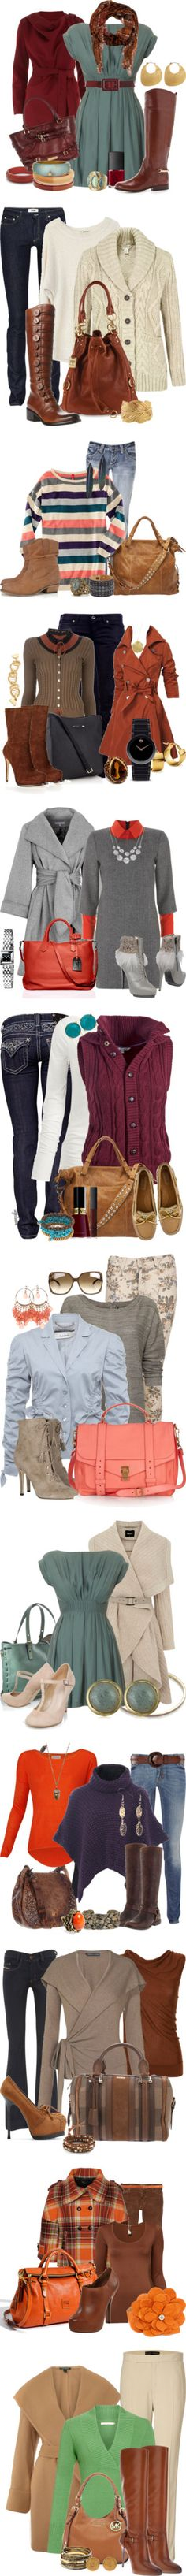 #great outfit ideas. #2dayslook clothing #new #fashion #nice www.2dayslook.com